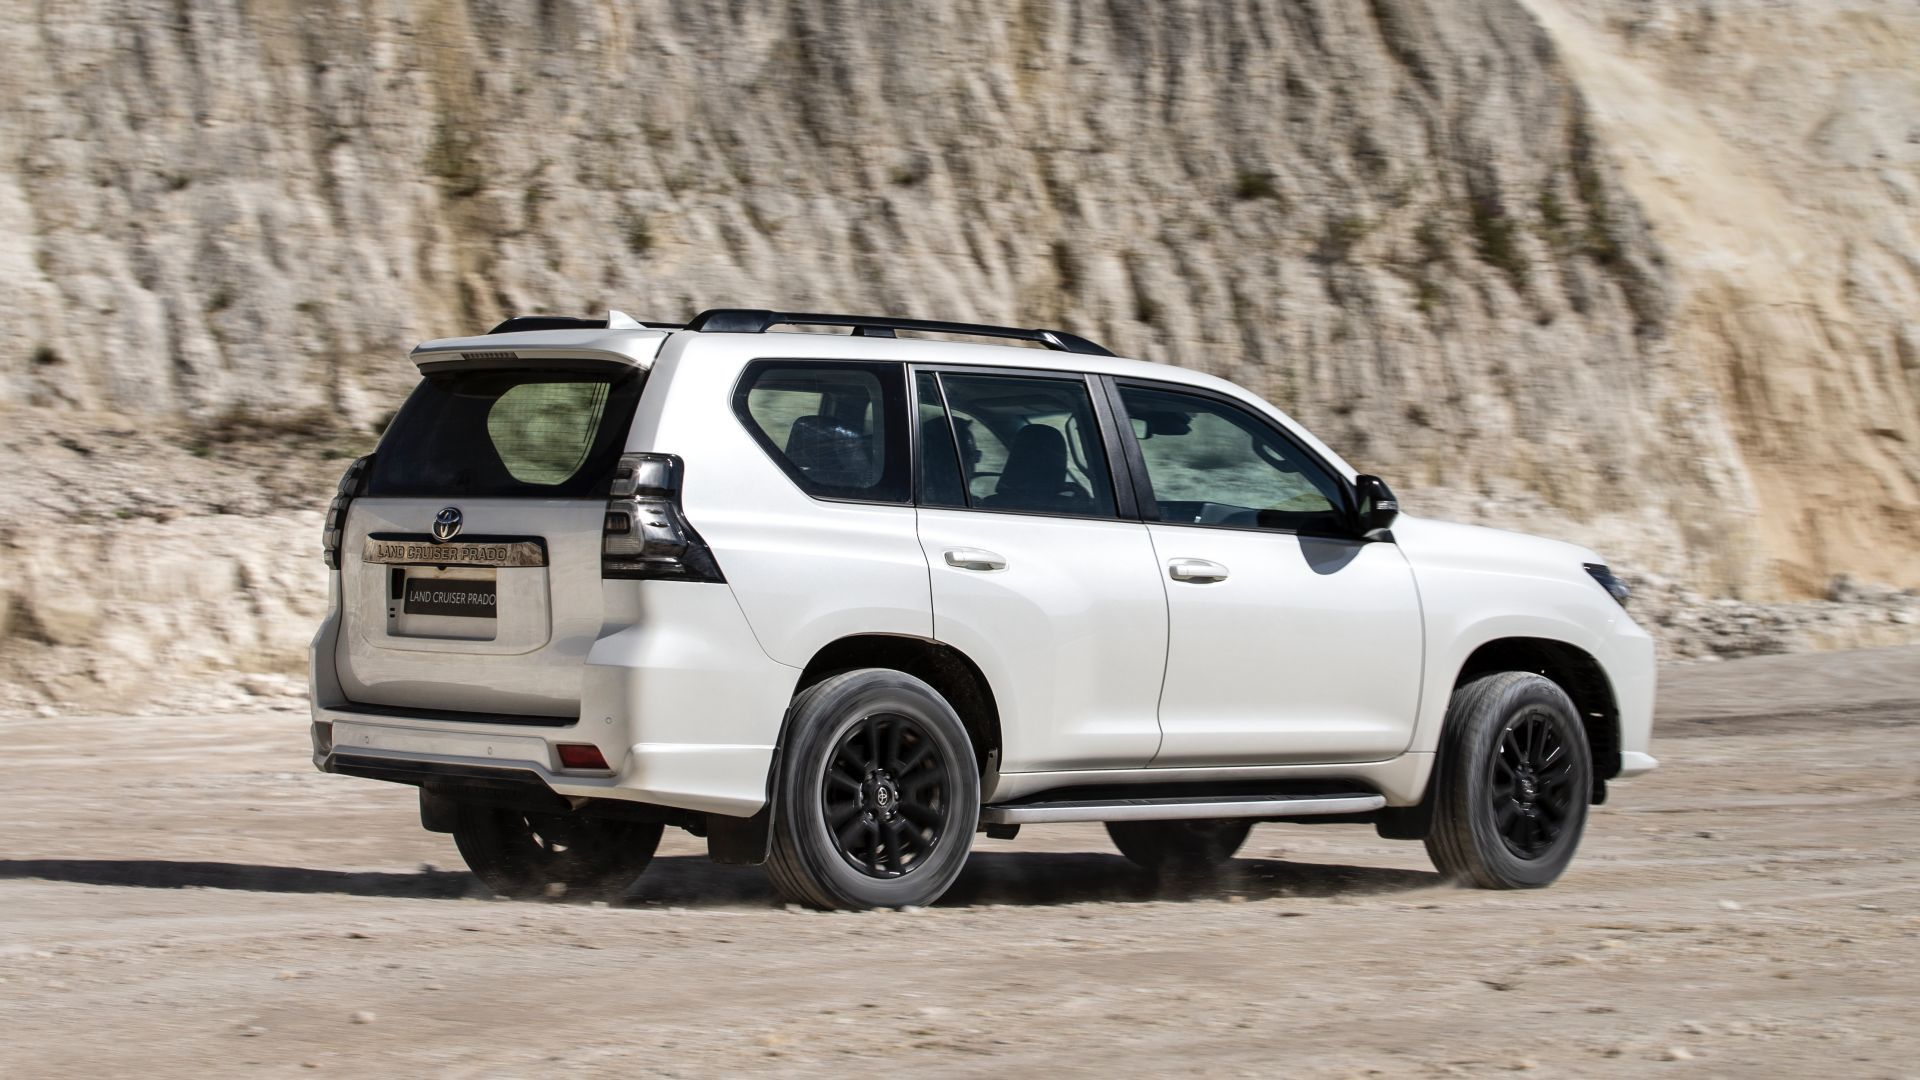 Toyota-Land-Cruiser-euro-2021-27